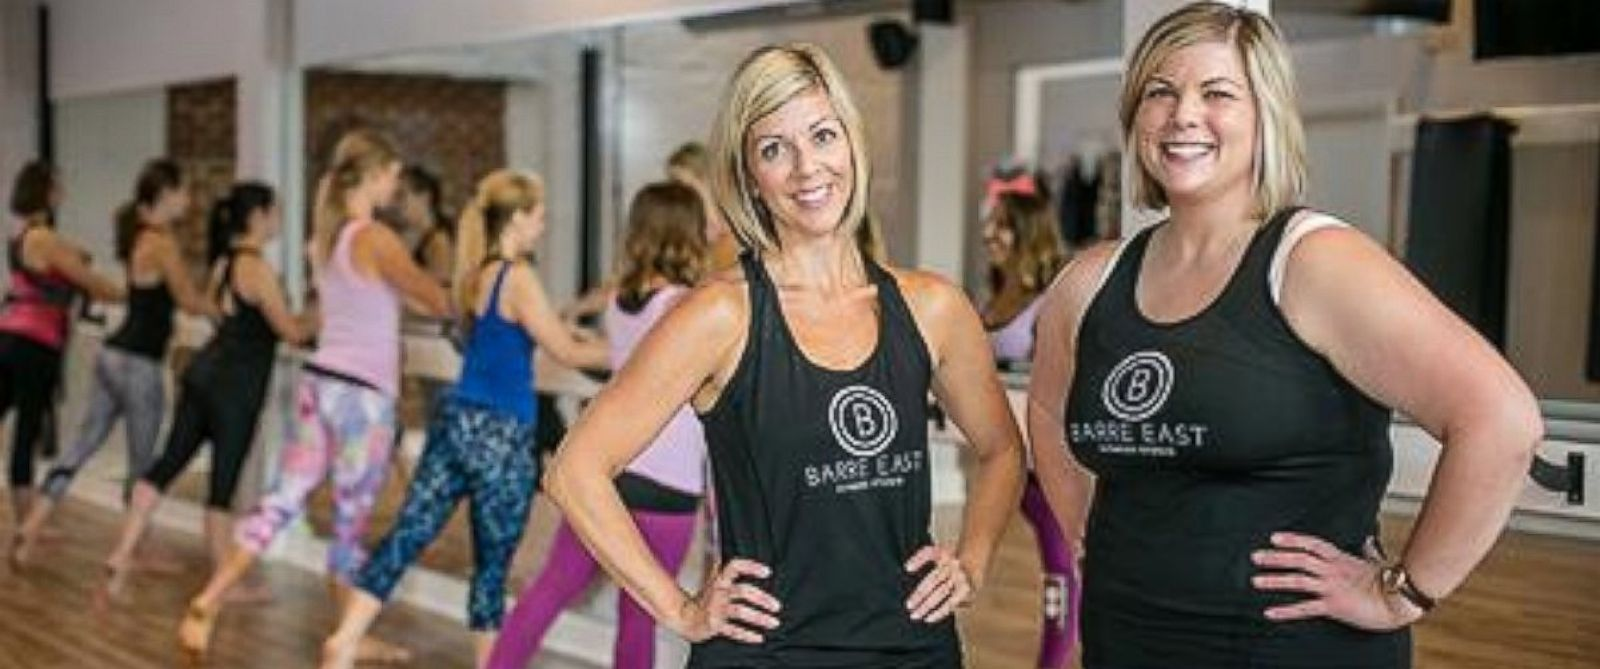 fitness instructor writes moving essay after being body shamed in fitness instructor writes moving essay about body shaming